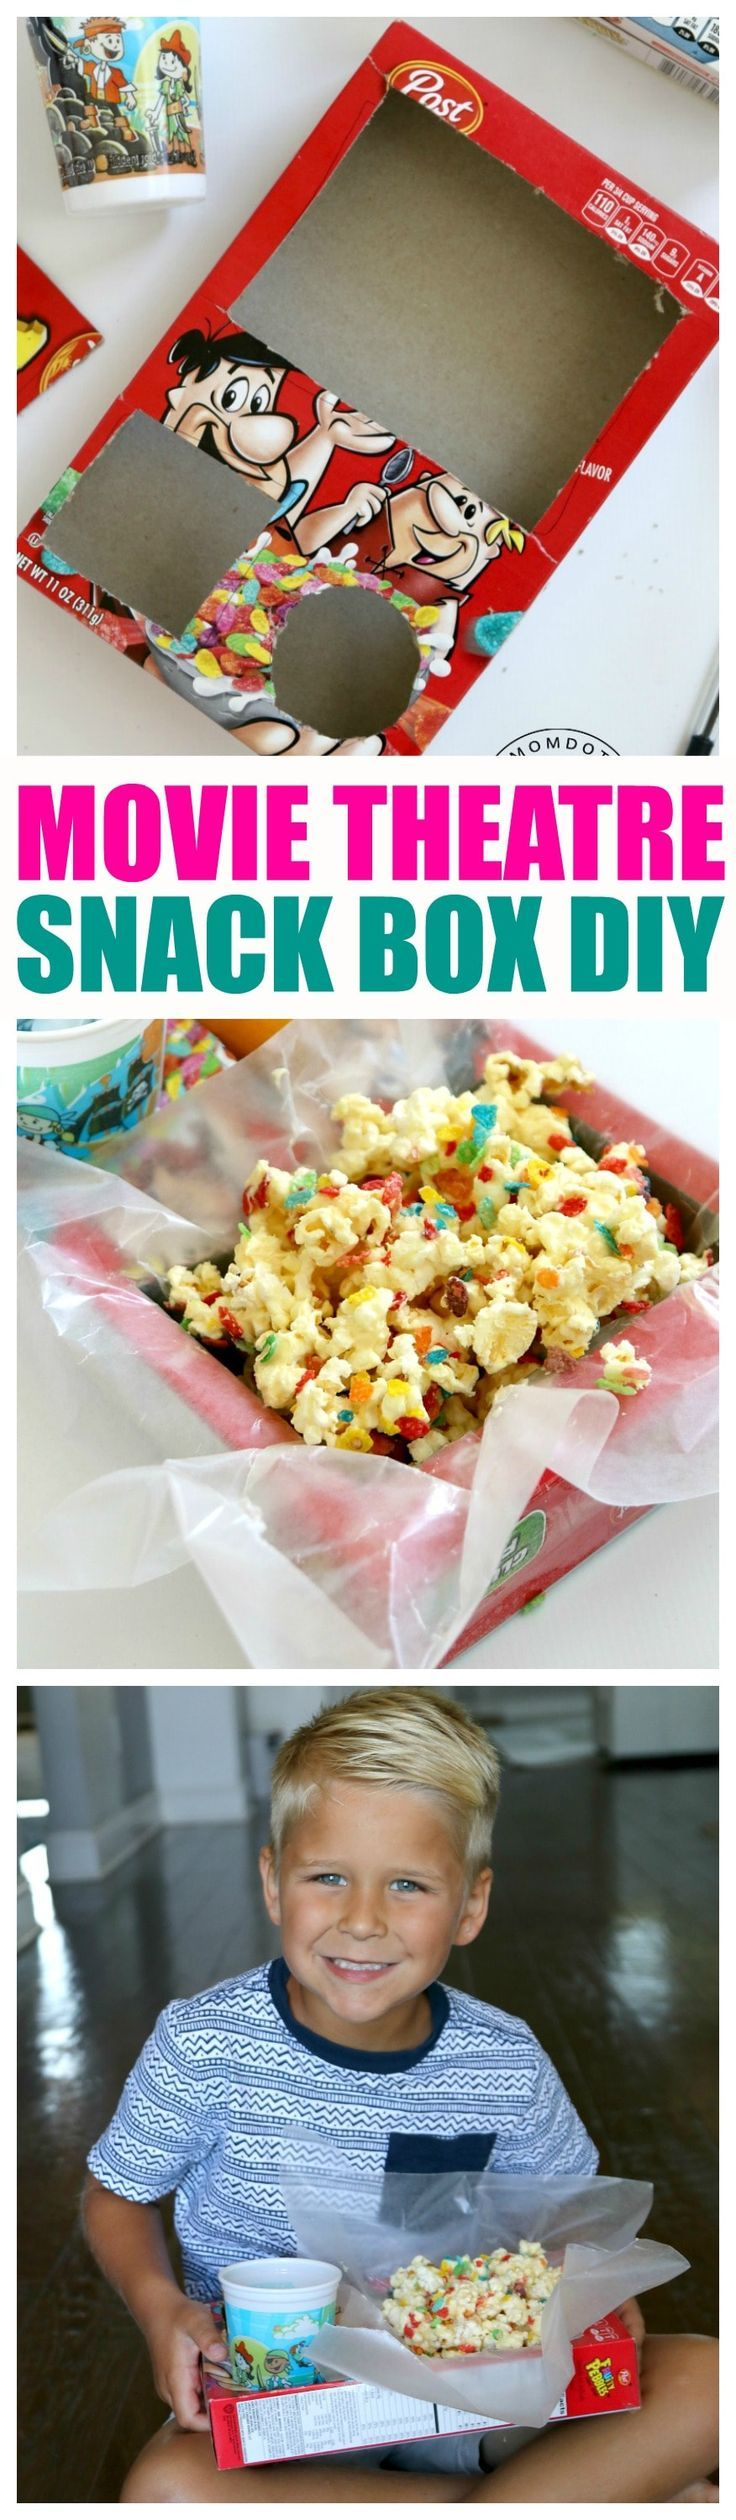 Make a Movie Theater Style Snack box at home, under 5 minute DIY to keep snacks stable while watching a movie